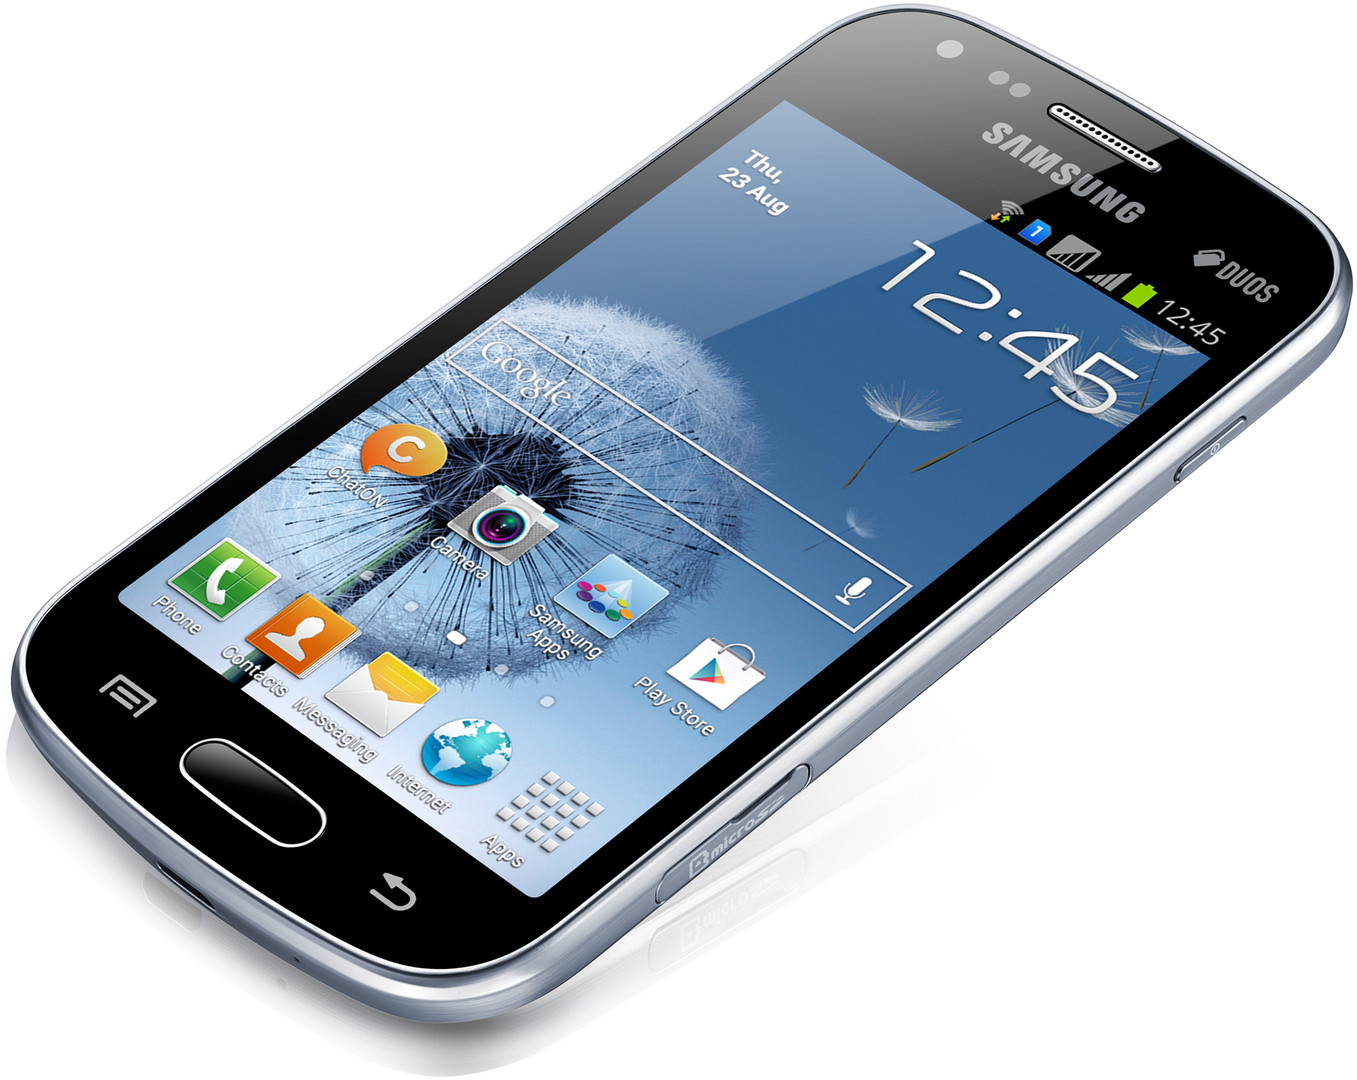 Samsung Galaxy S Duos GT S7562 How To Install PMP Light ROM On Samsung Galaxy S Duos GT S7562 Smartphone